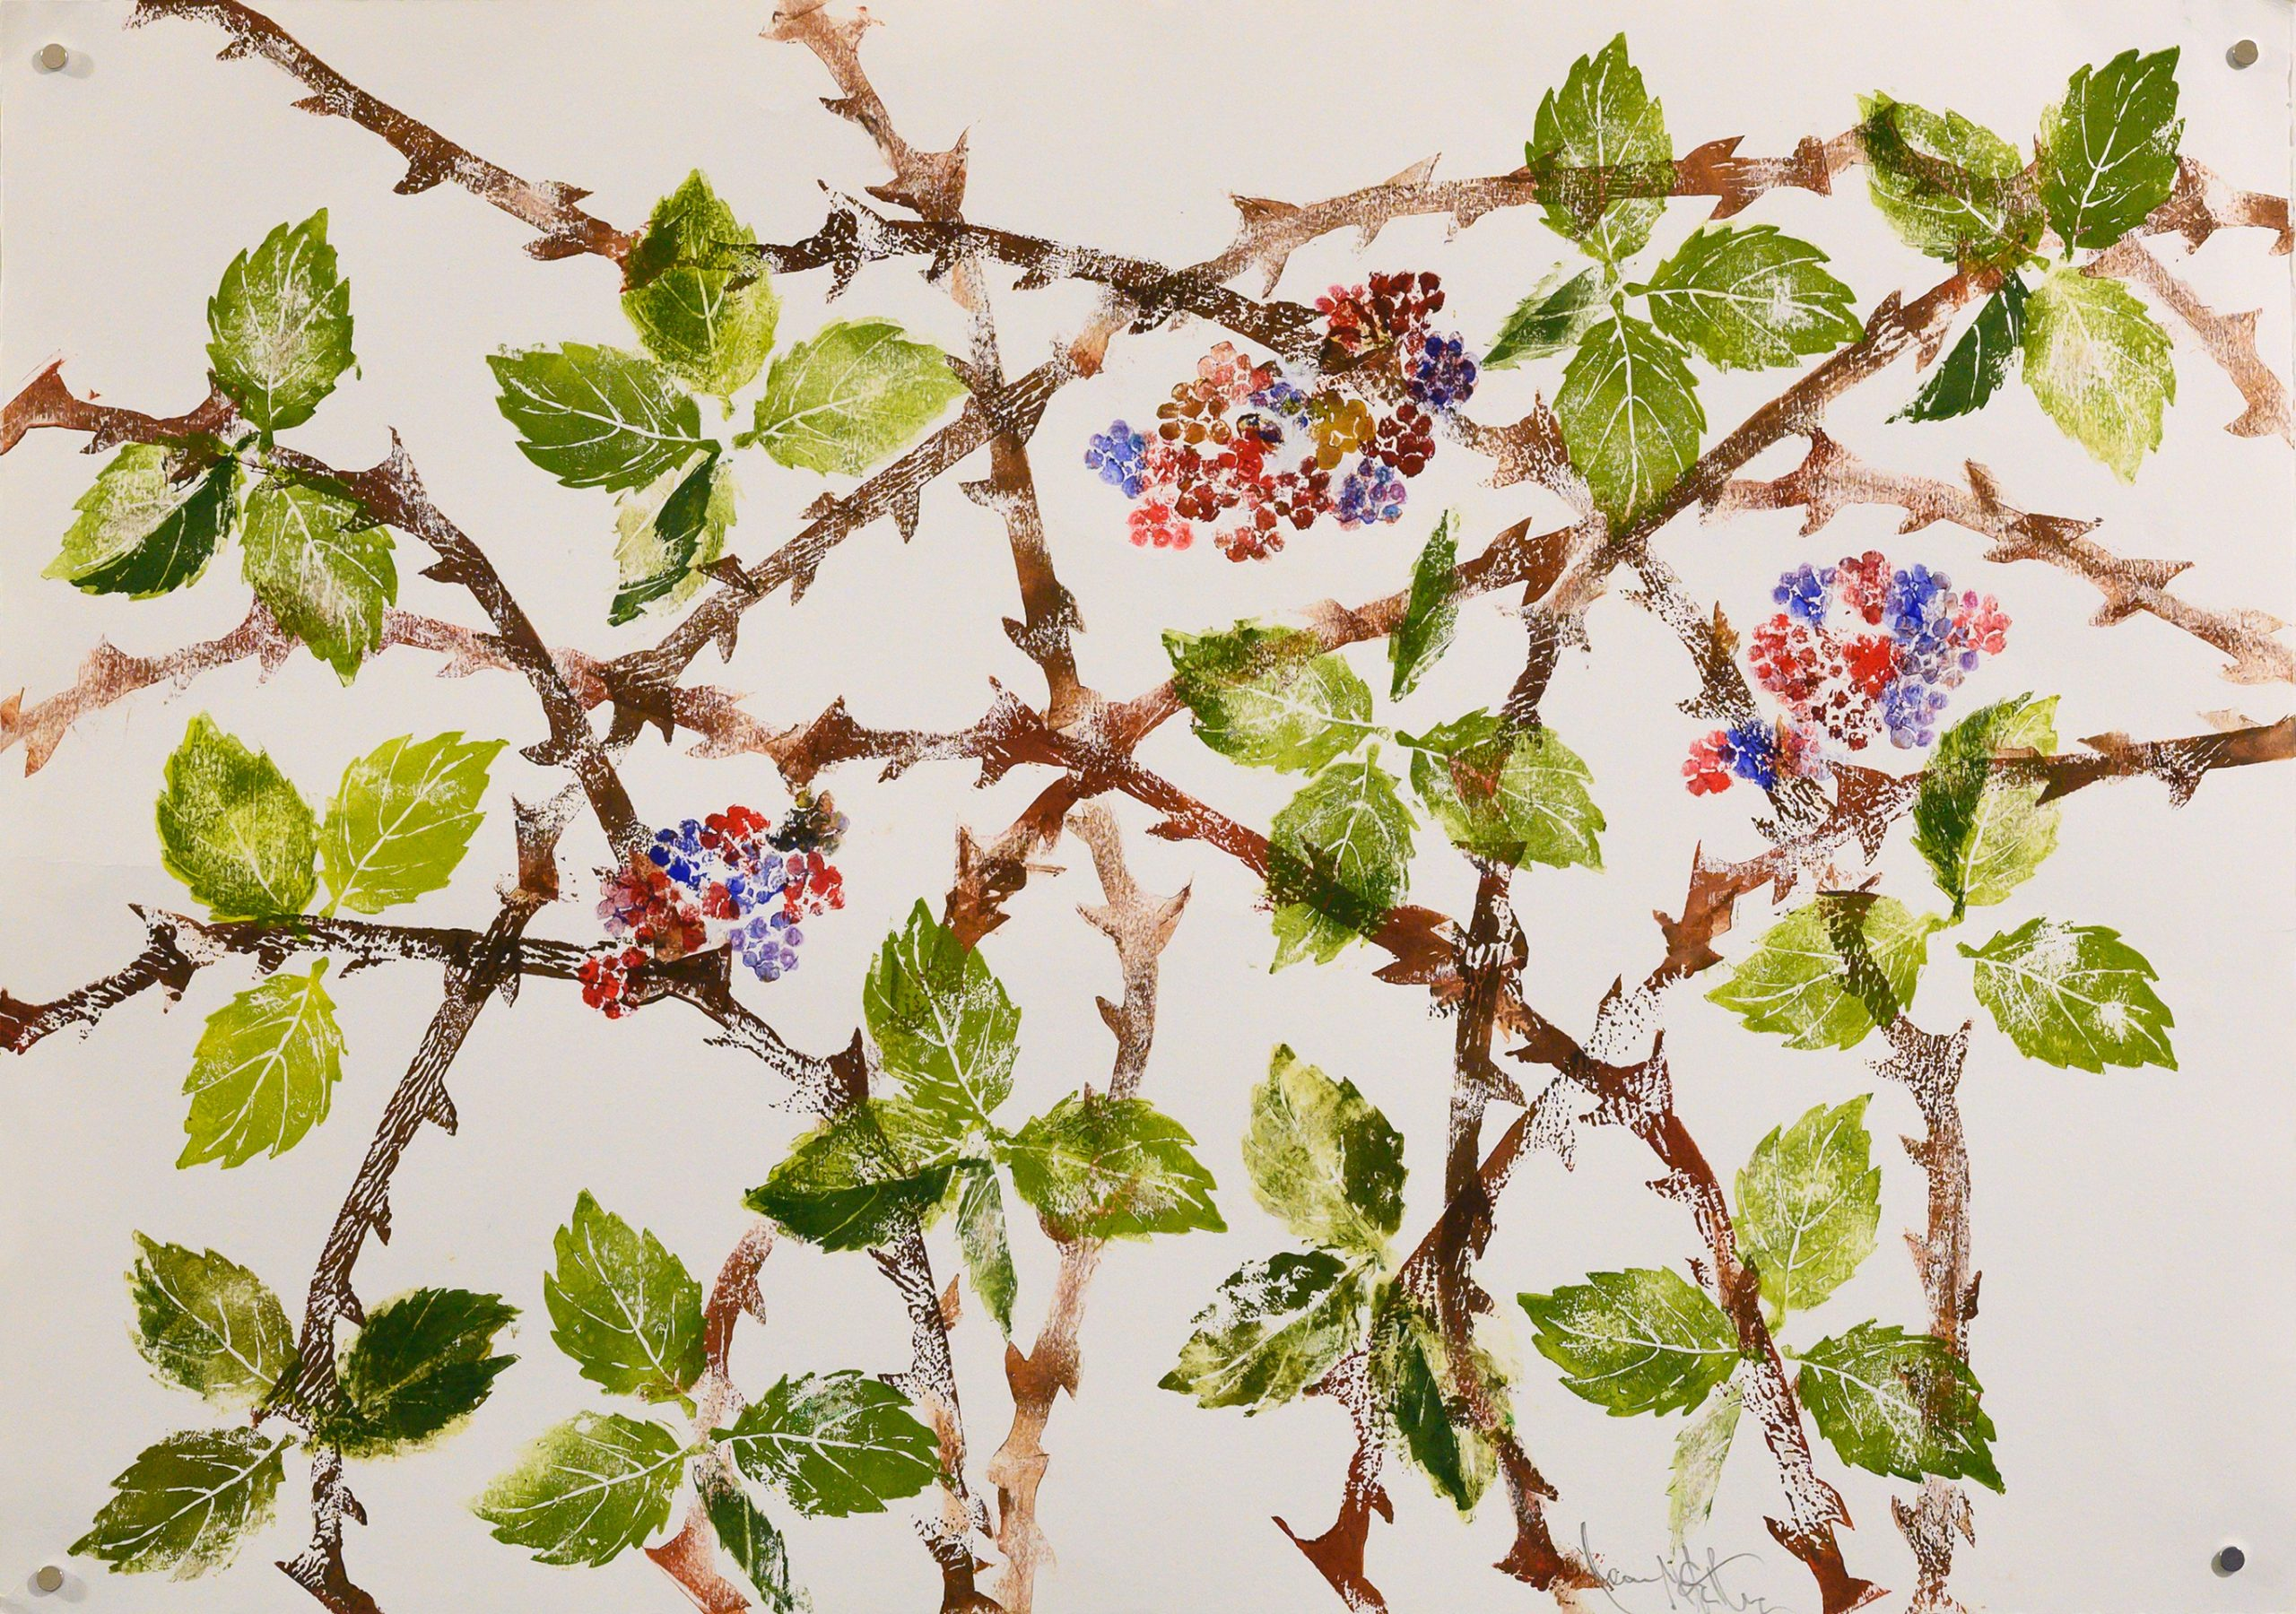 Unframed artwork by Jean McArthur of red and purple blackberries, brown spiky vines and green leaves